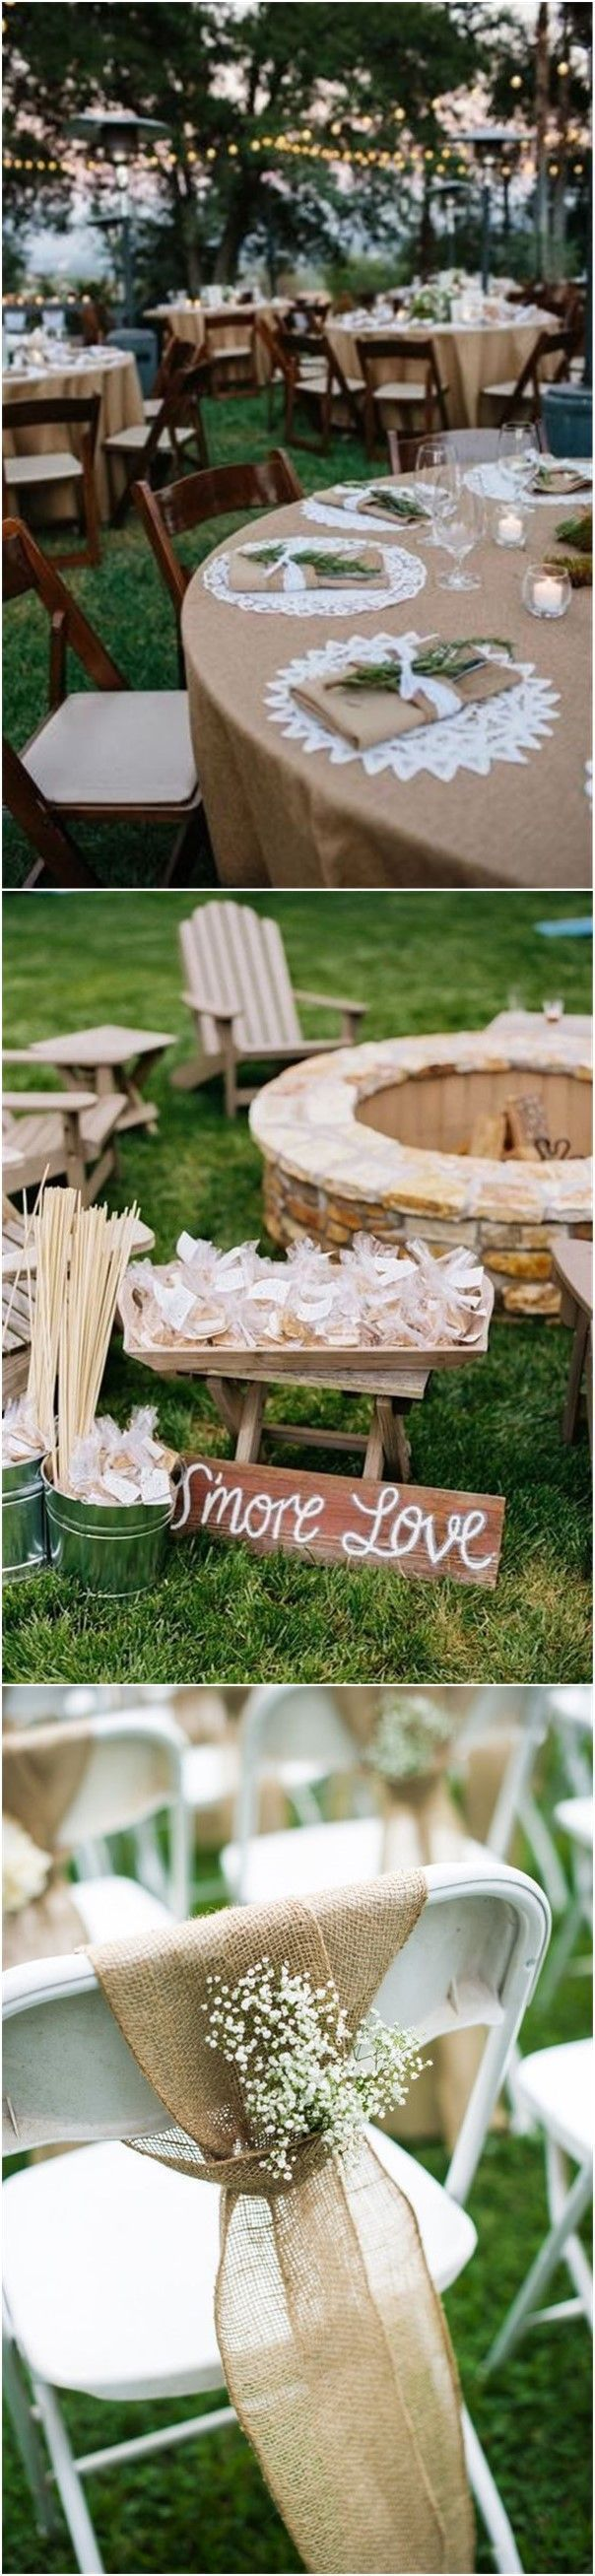 Best 25 cheap backyard wedding ideas on pinterest cheap for Backyard wedding decoration ideas on a budget